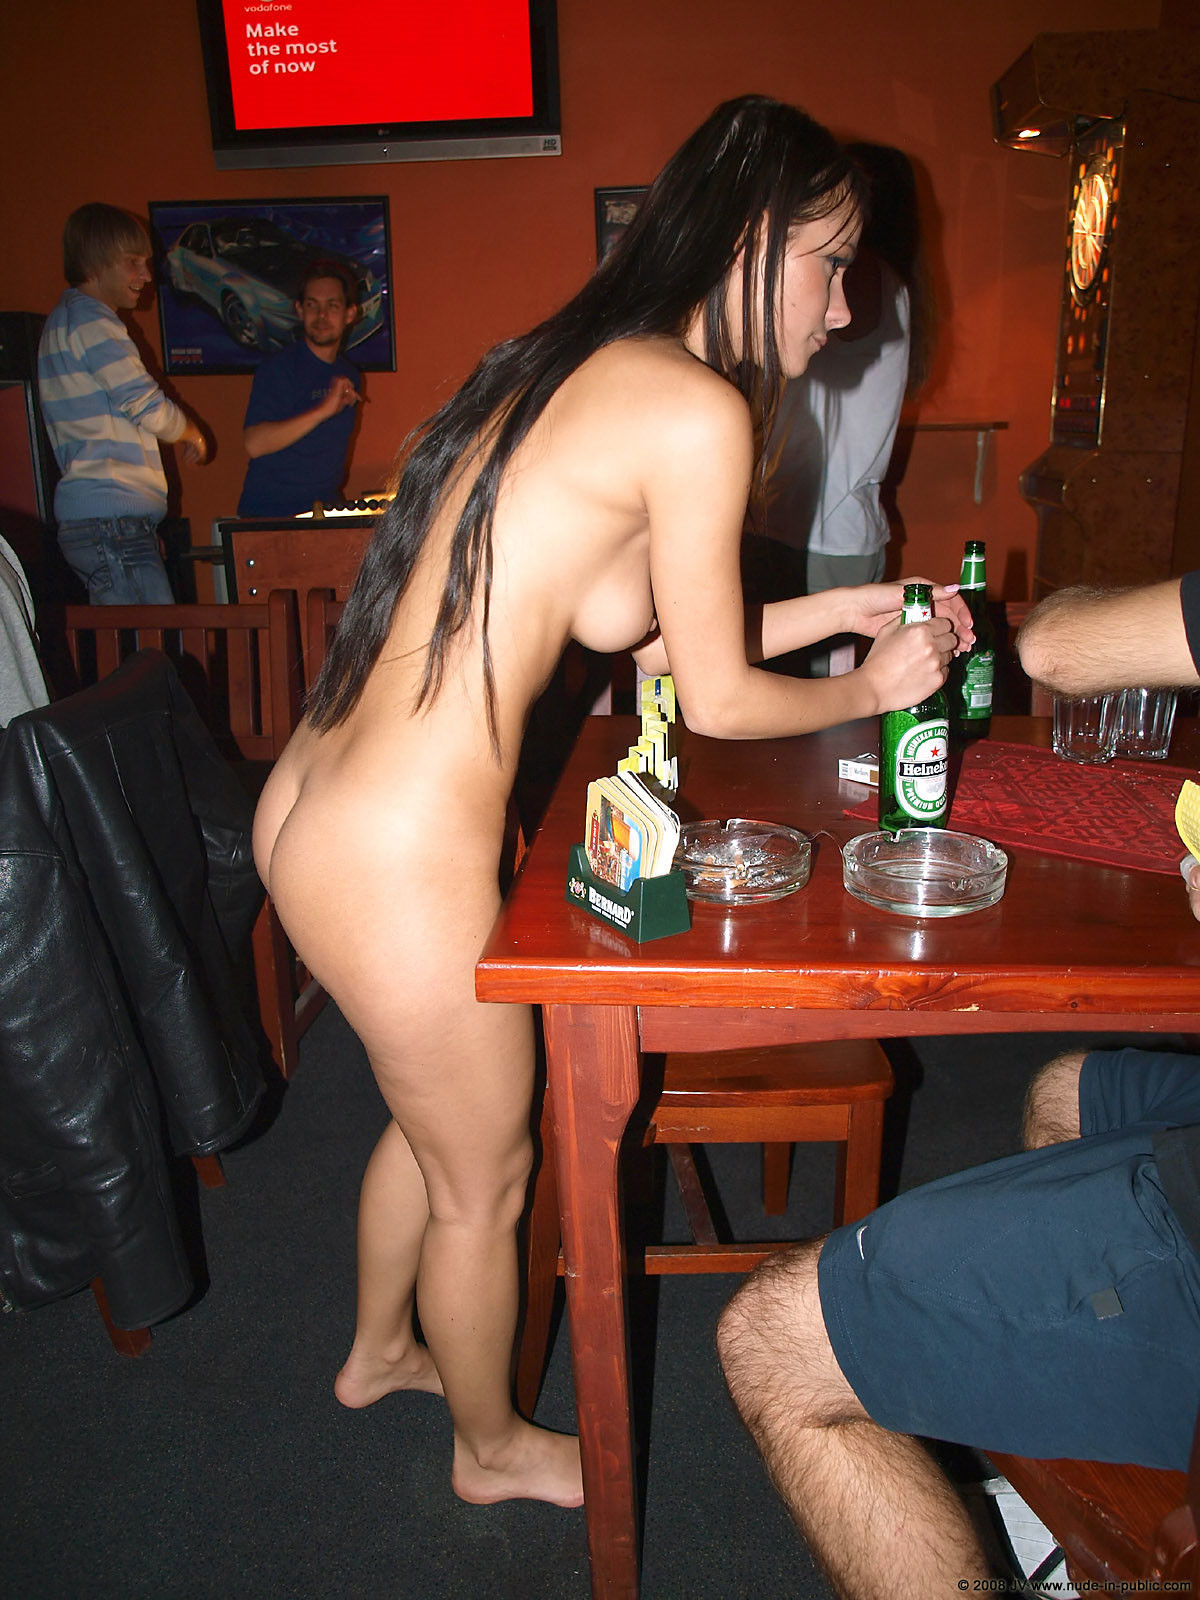 melisa-pub-beer-bar-girl-nude-in-public-93